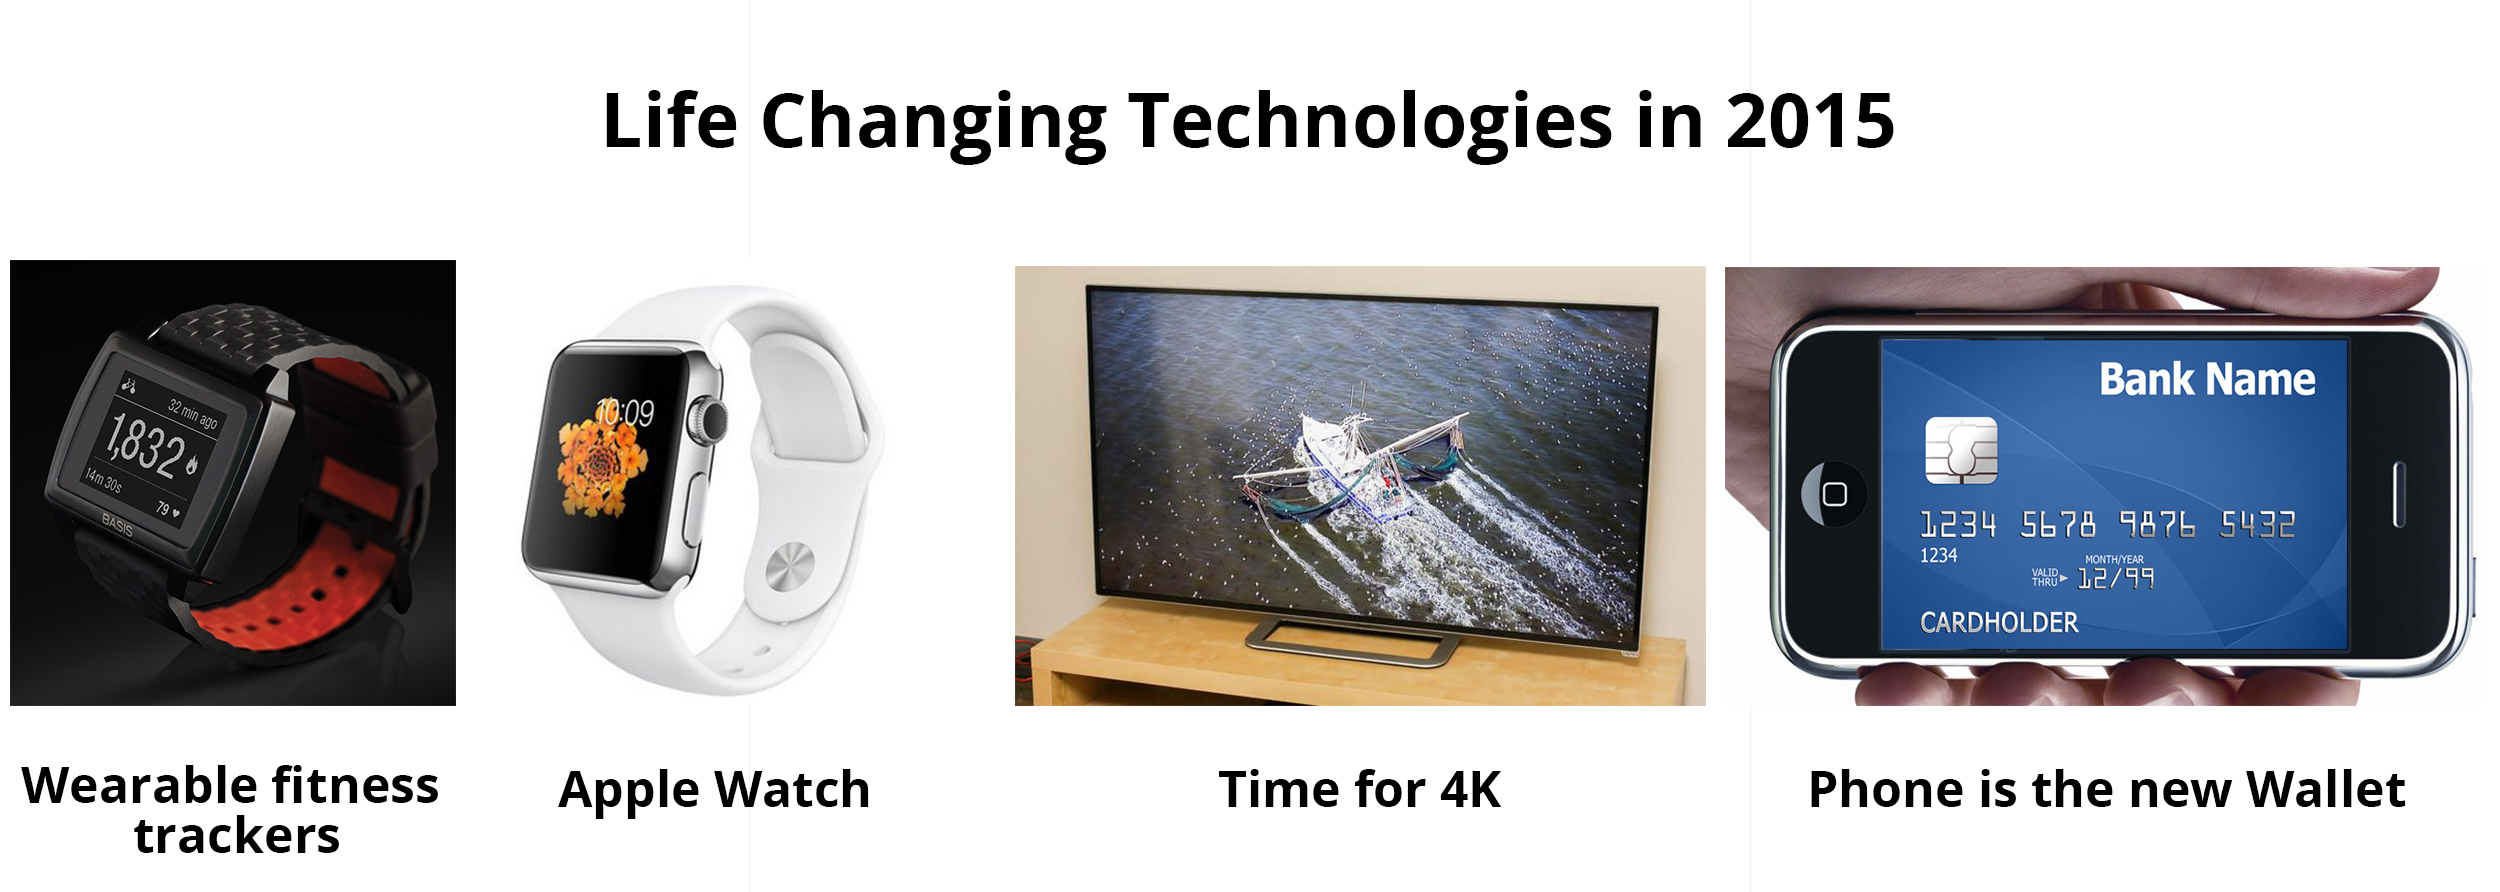 Life changing technologies in 2015